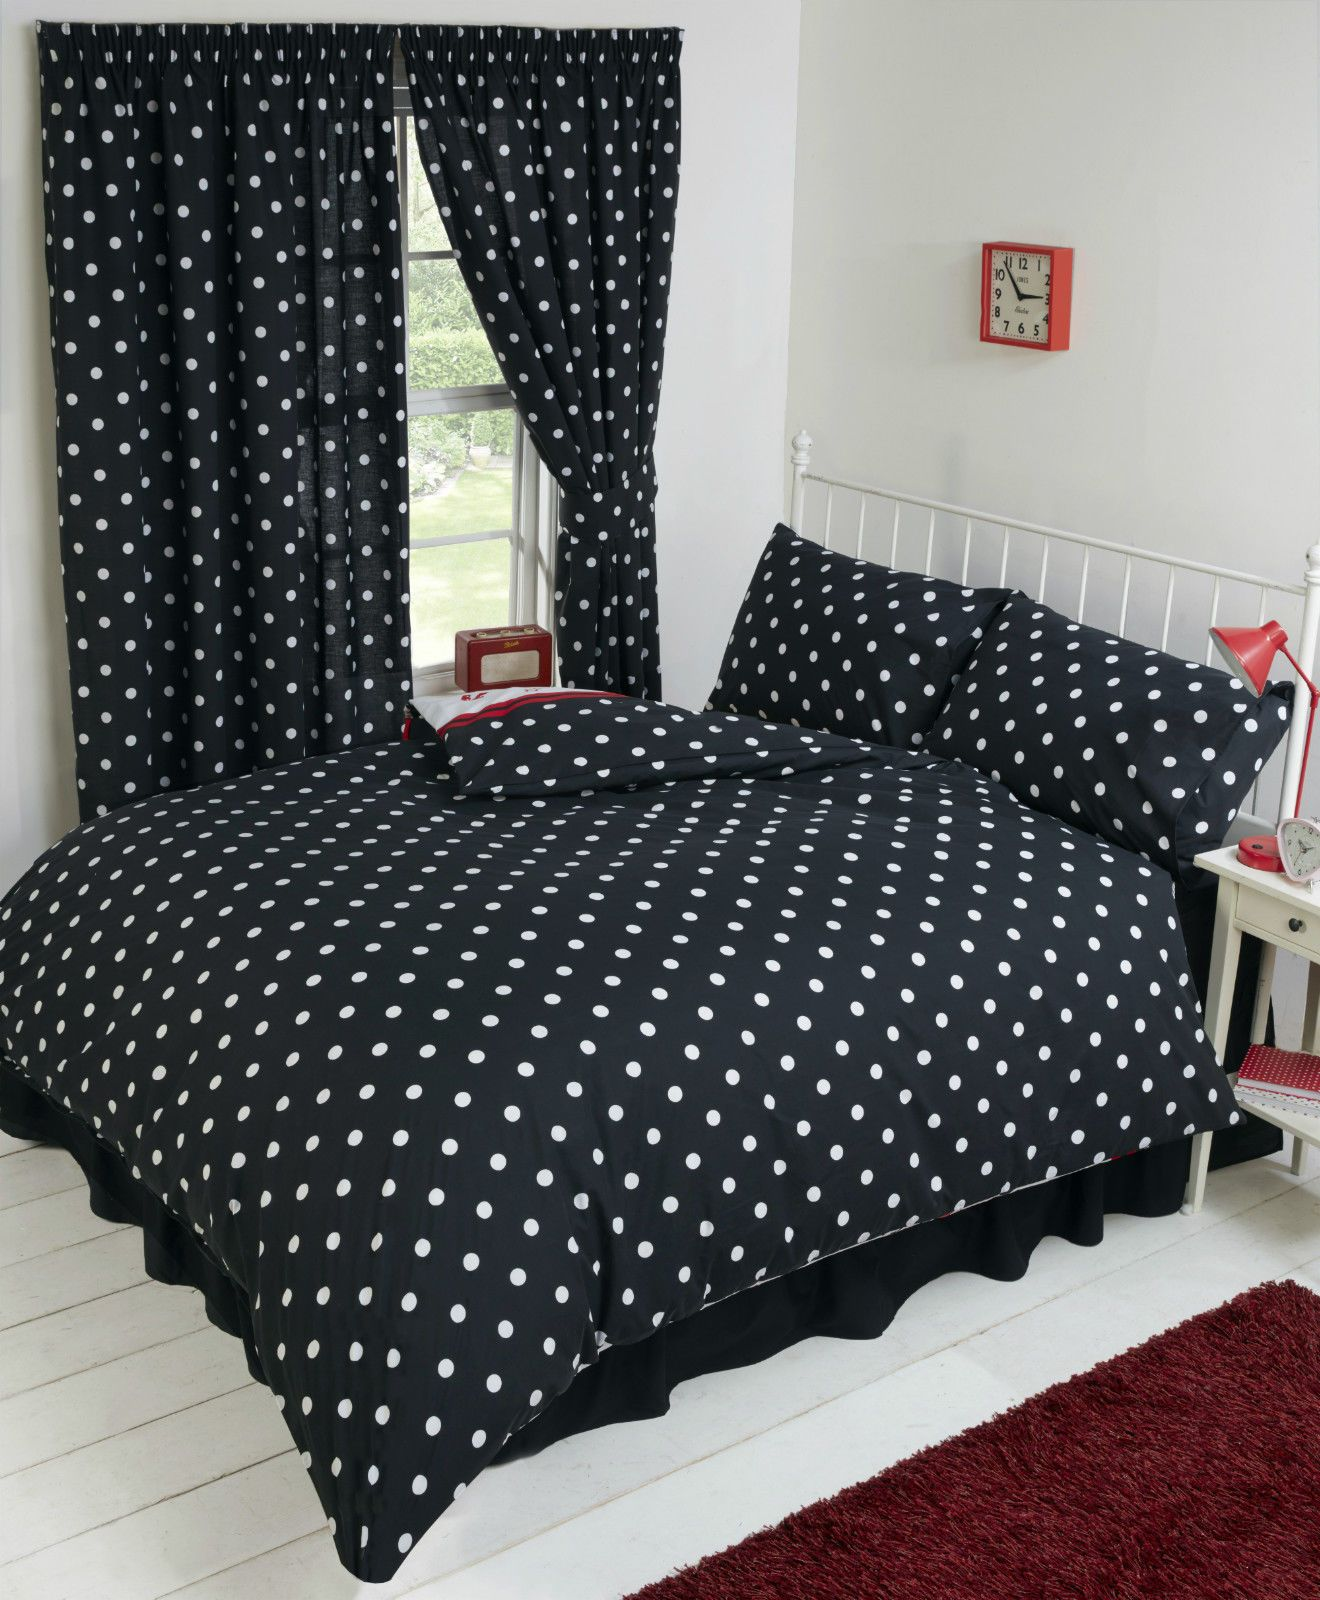 BETTY BOOP BEDROOM REVERSIBLE BEDDING DUVET QUILT COVER SET POLKA BLACK  WHITE